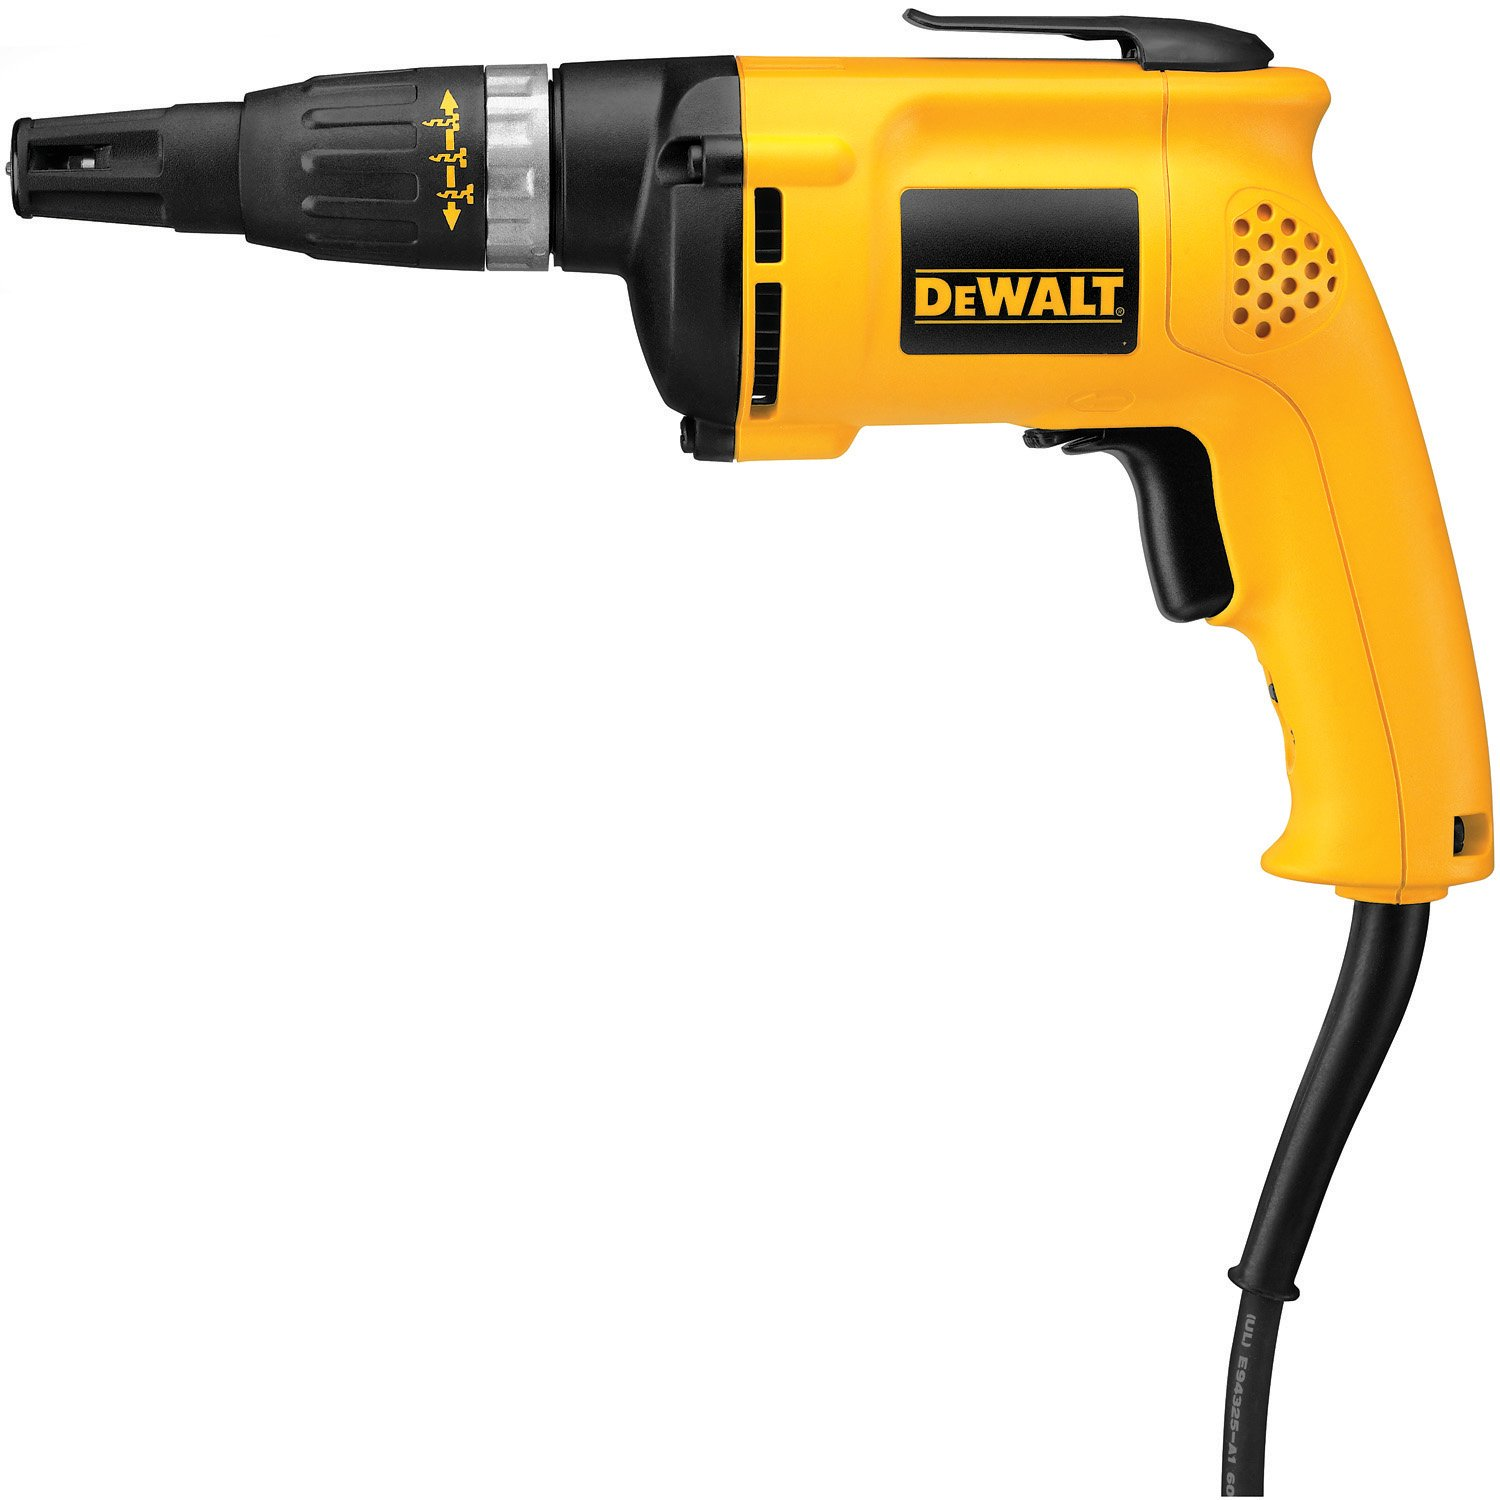 DEWALT Drywall Screw Gun, 6.0-Amp DW252